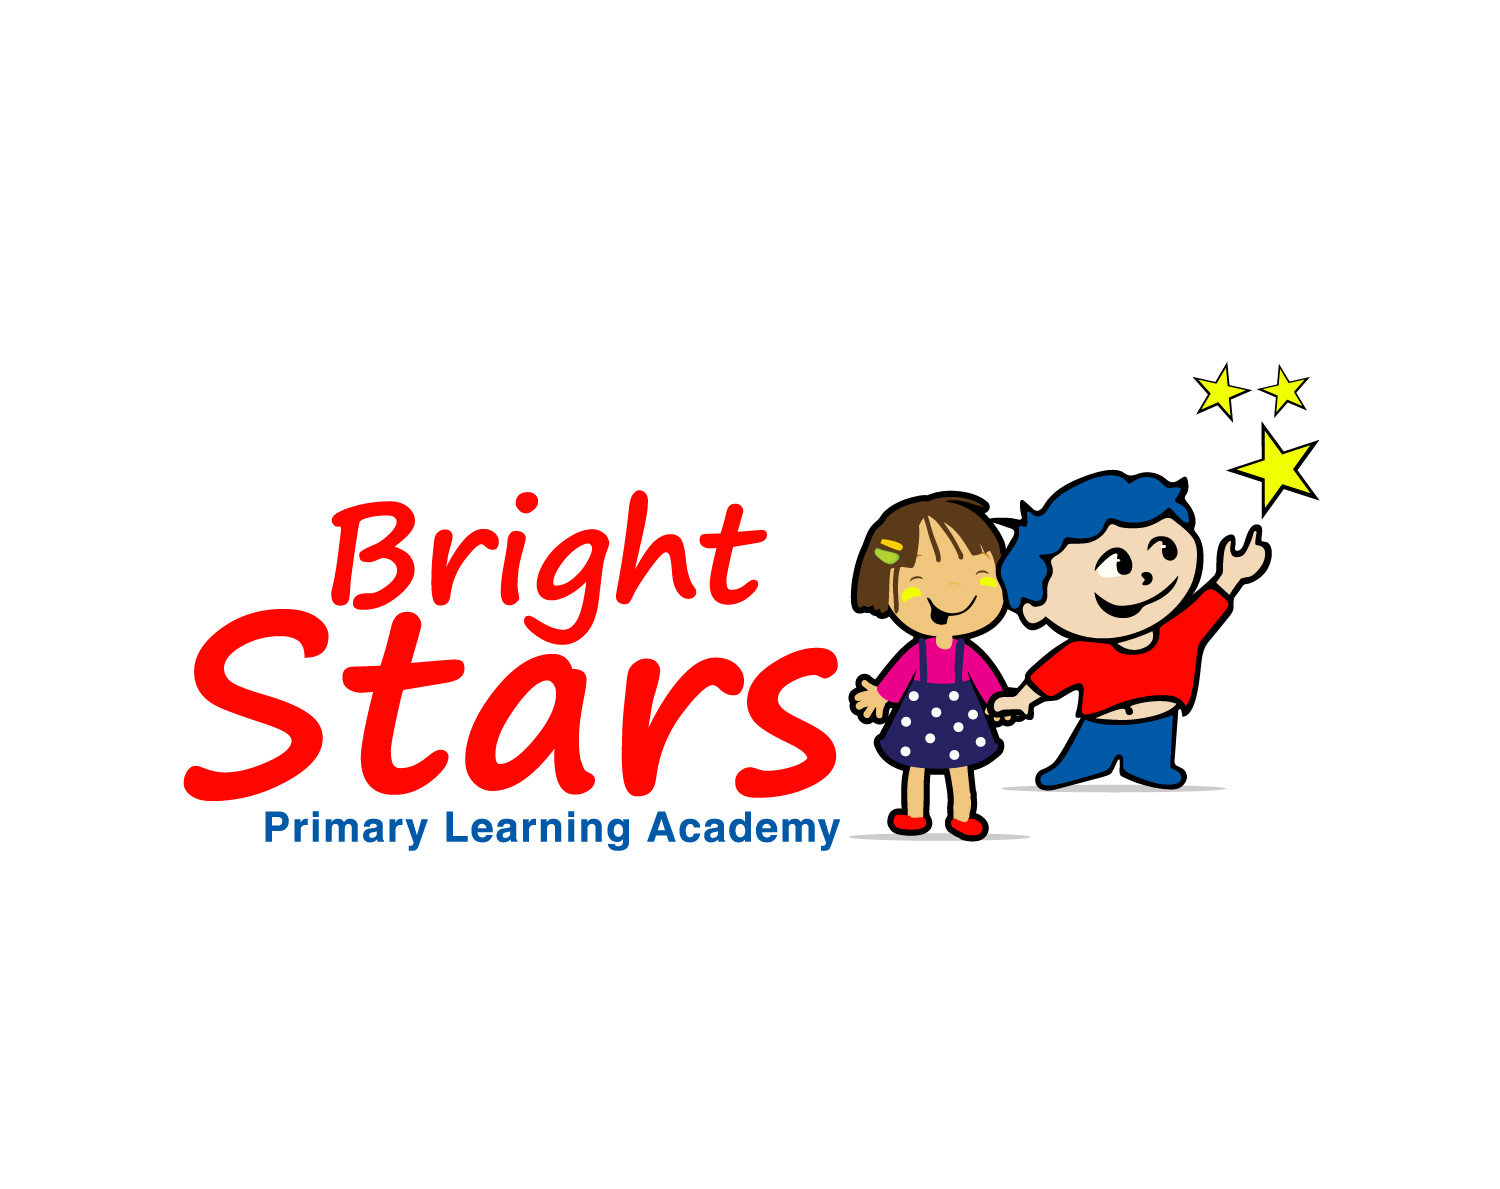 Bright Stars Primary Learning Academy